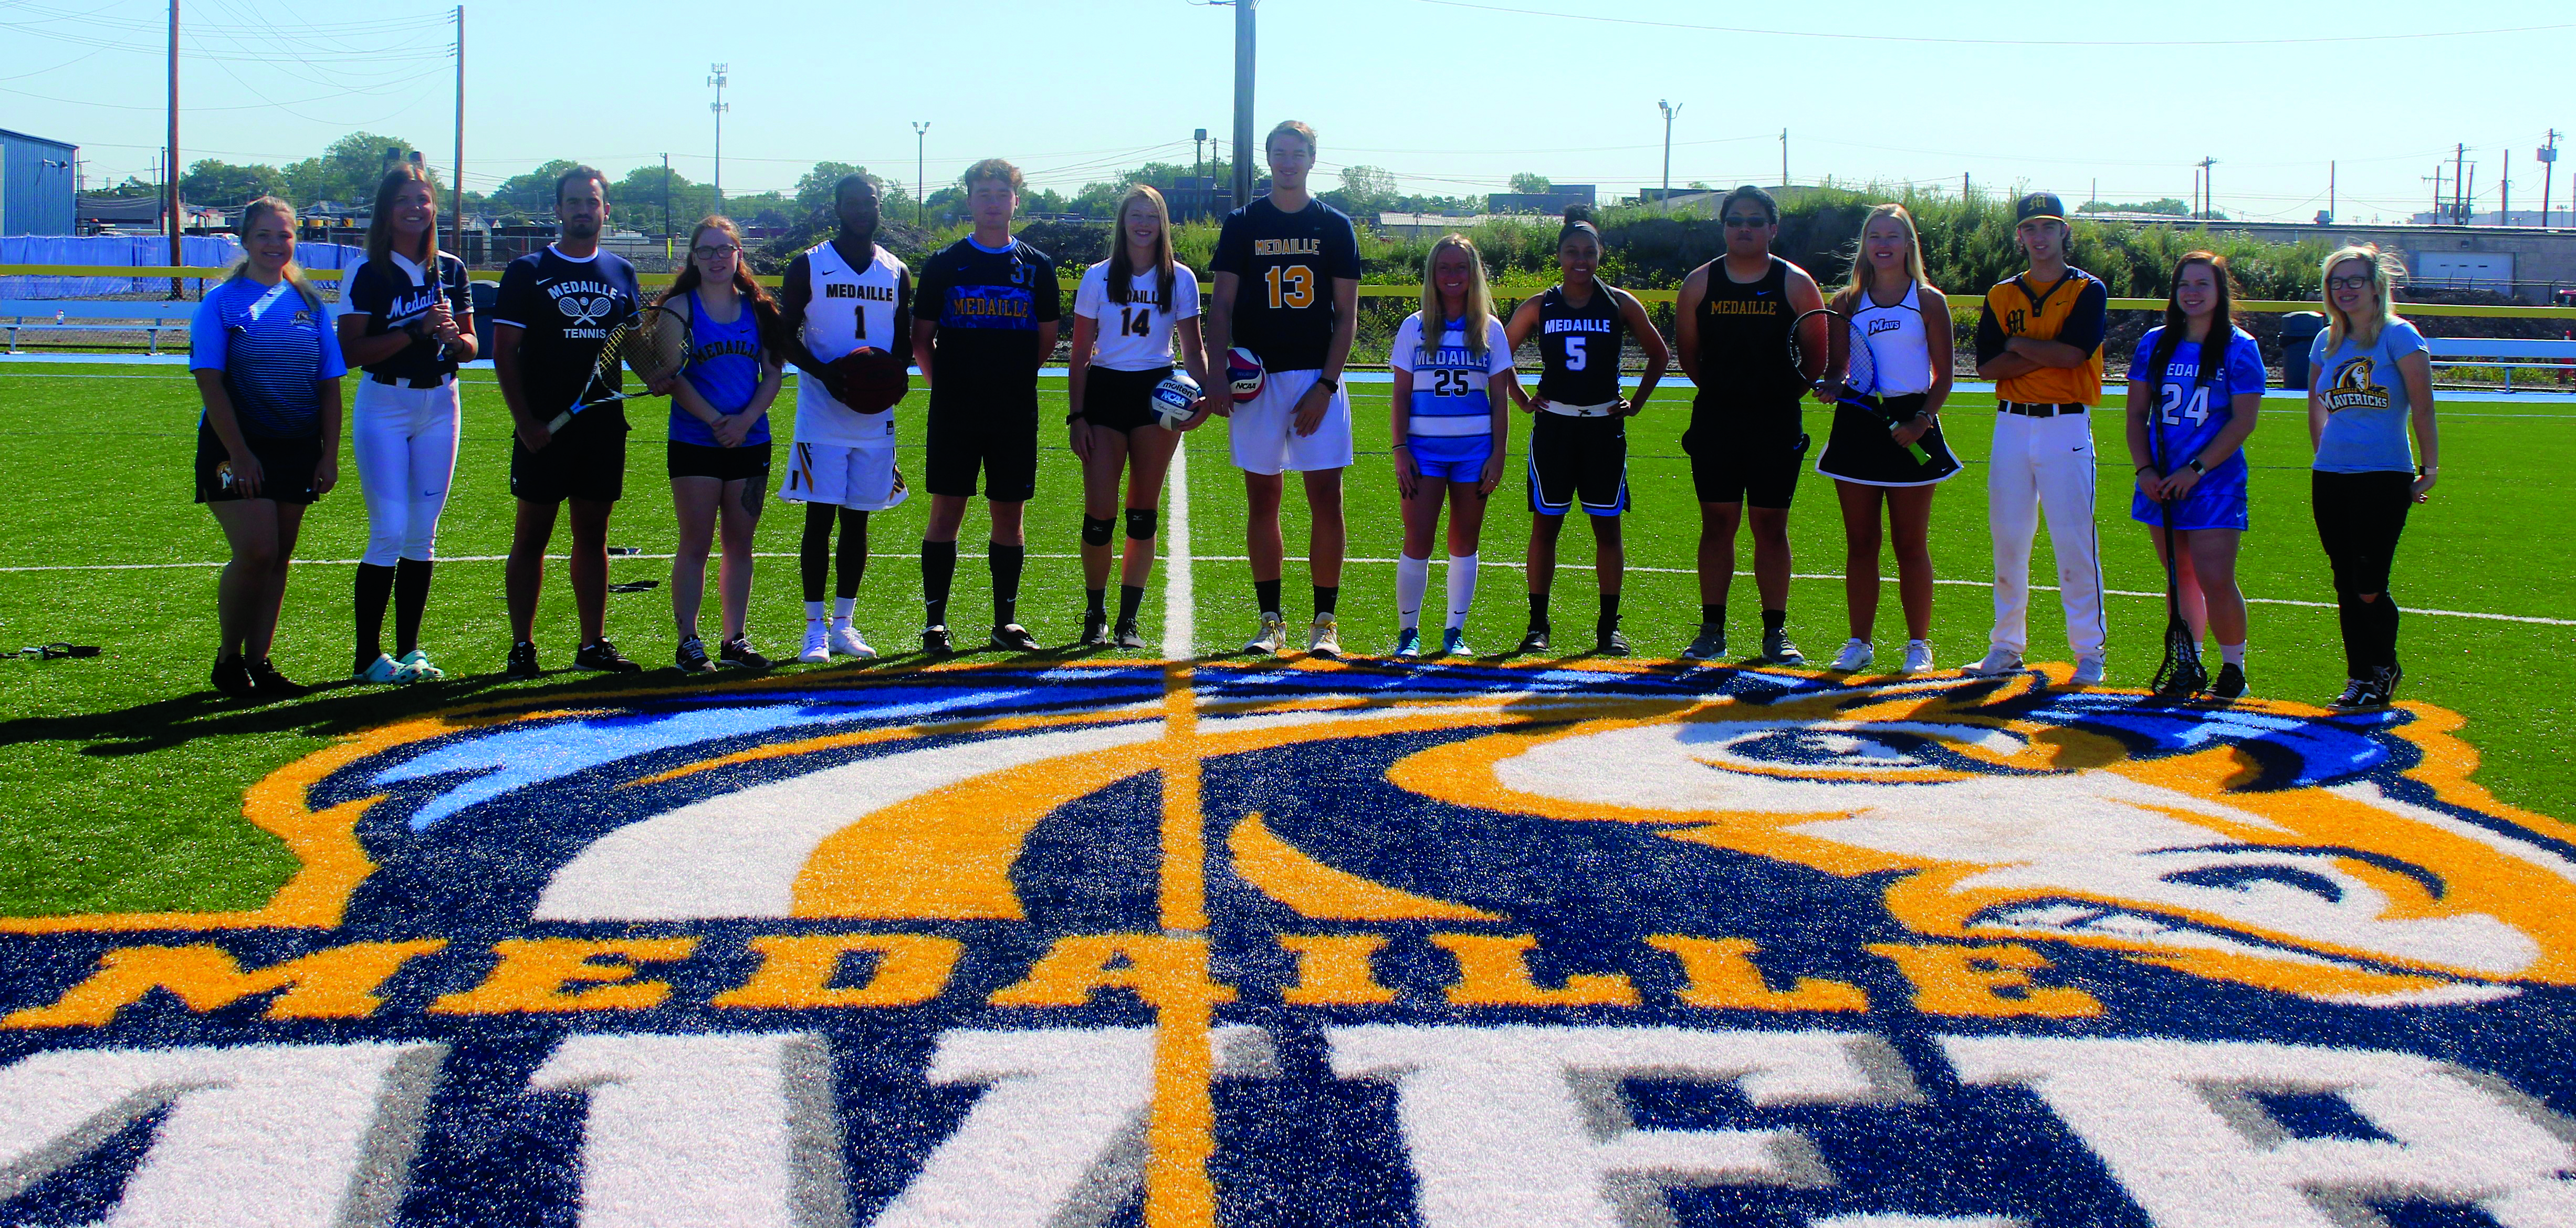 Medaille College Athletes on New Field